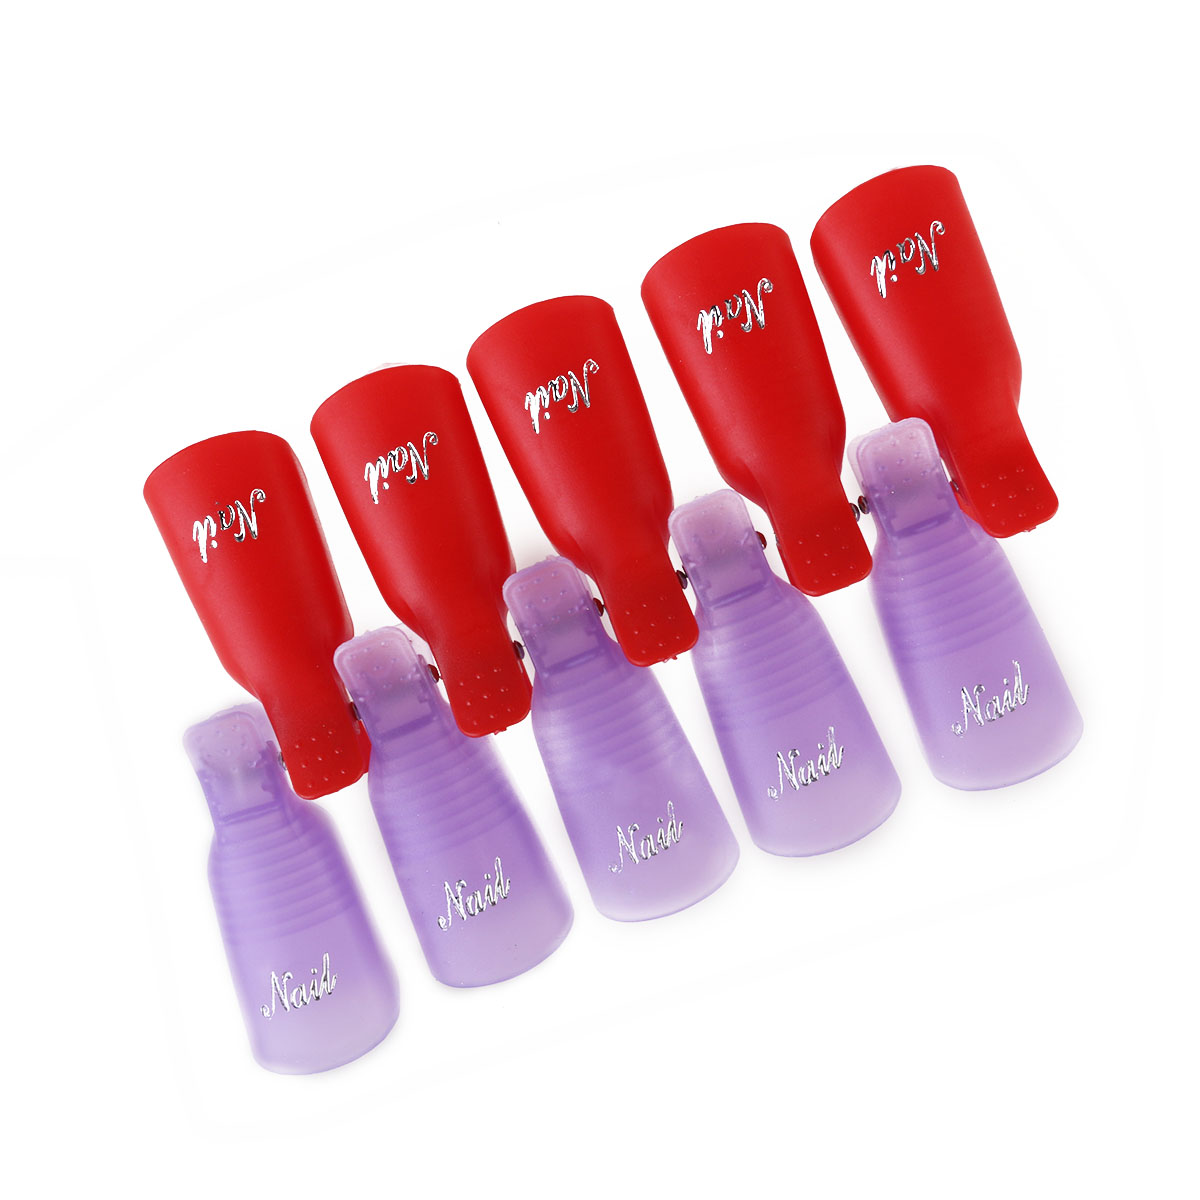 20pcs Nail Art Soak Off Clips Caps UV Gel Nail Polish Remover Wrap Tool (Red & Purple)